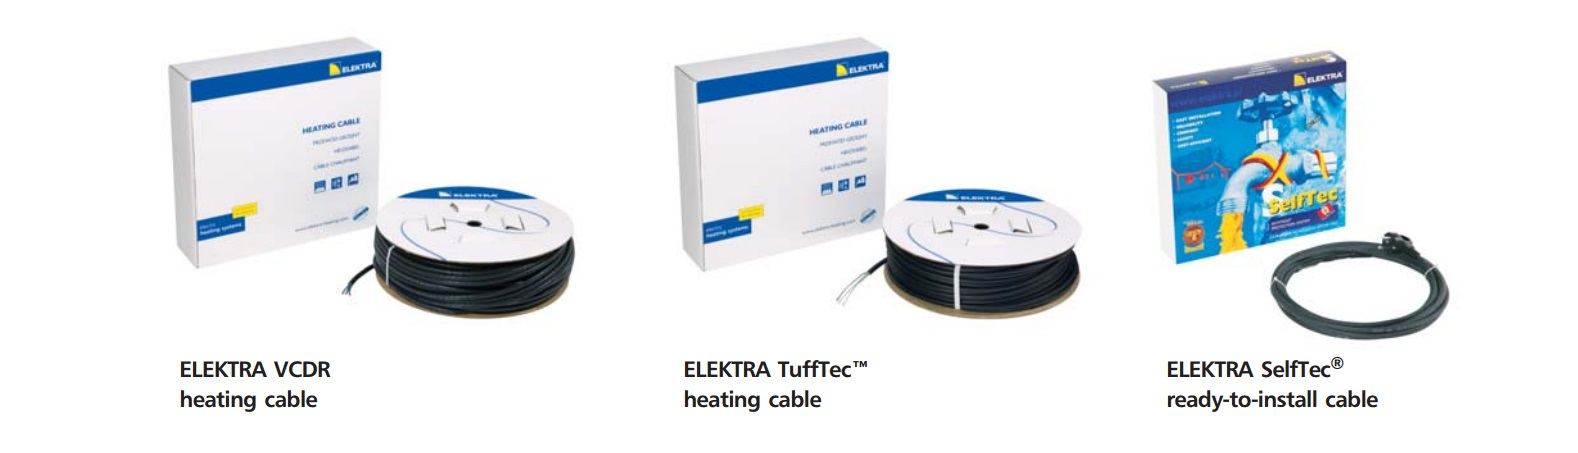 Heating cables frost protection cable accessories ELEKTRA 128